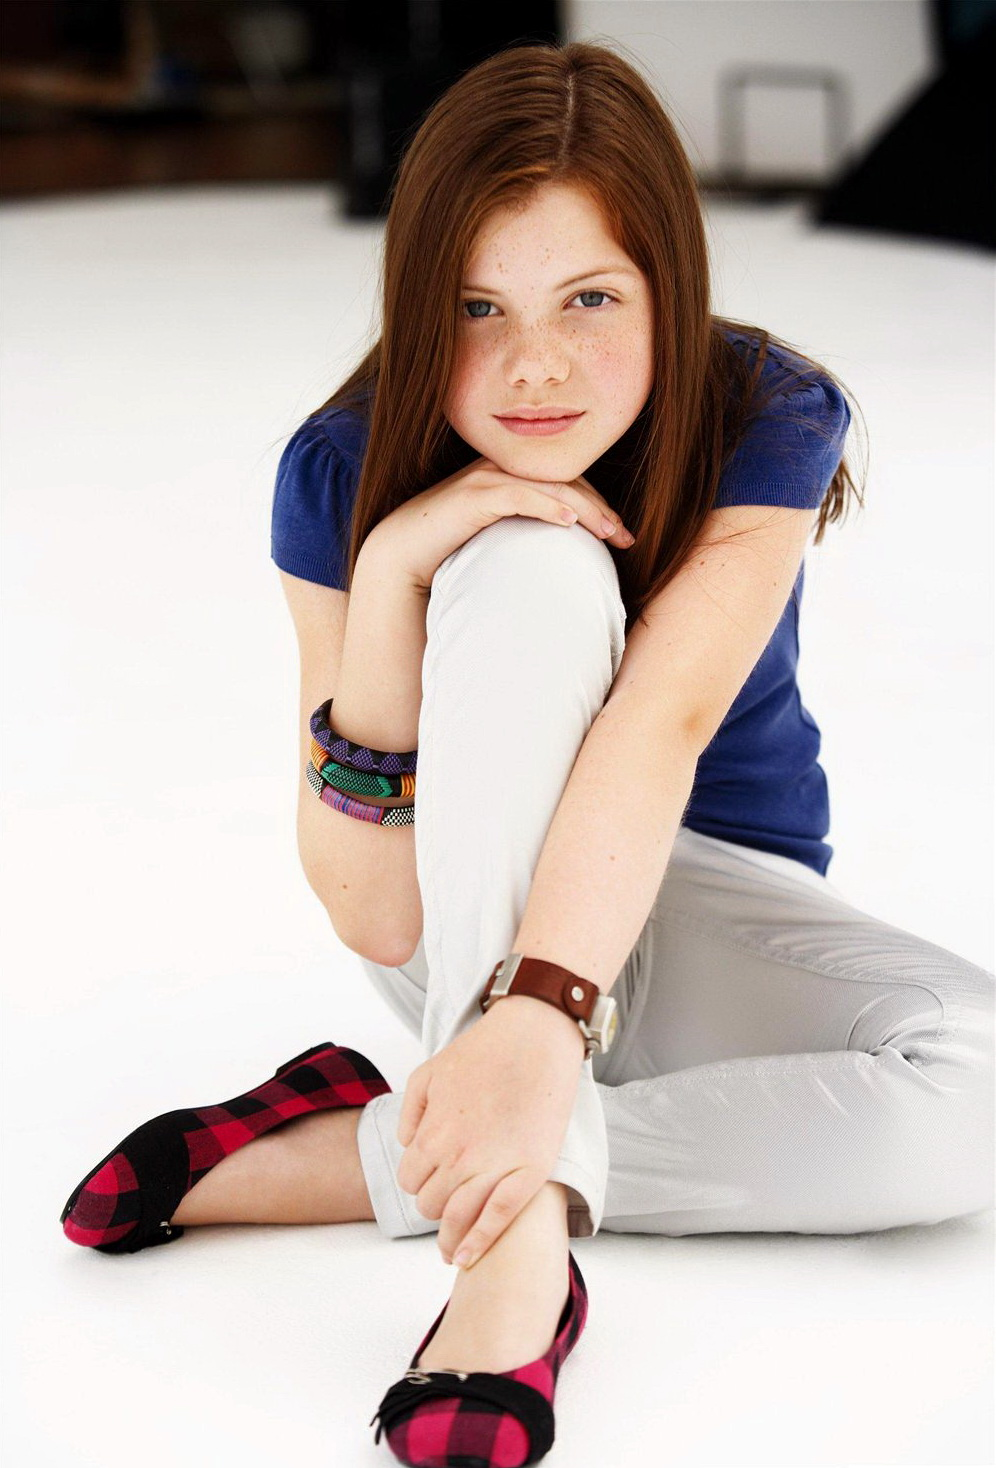 georgie henley photo 2 of 86 pics wallpaper   photo